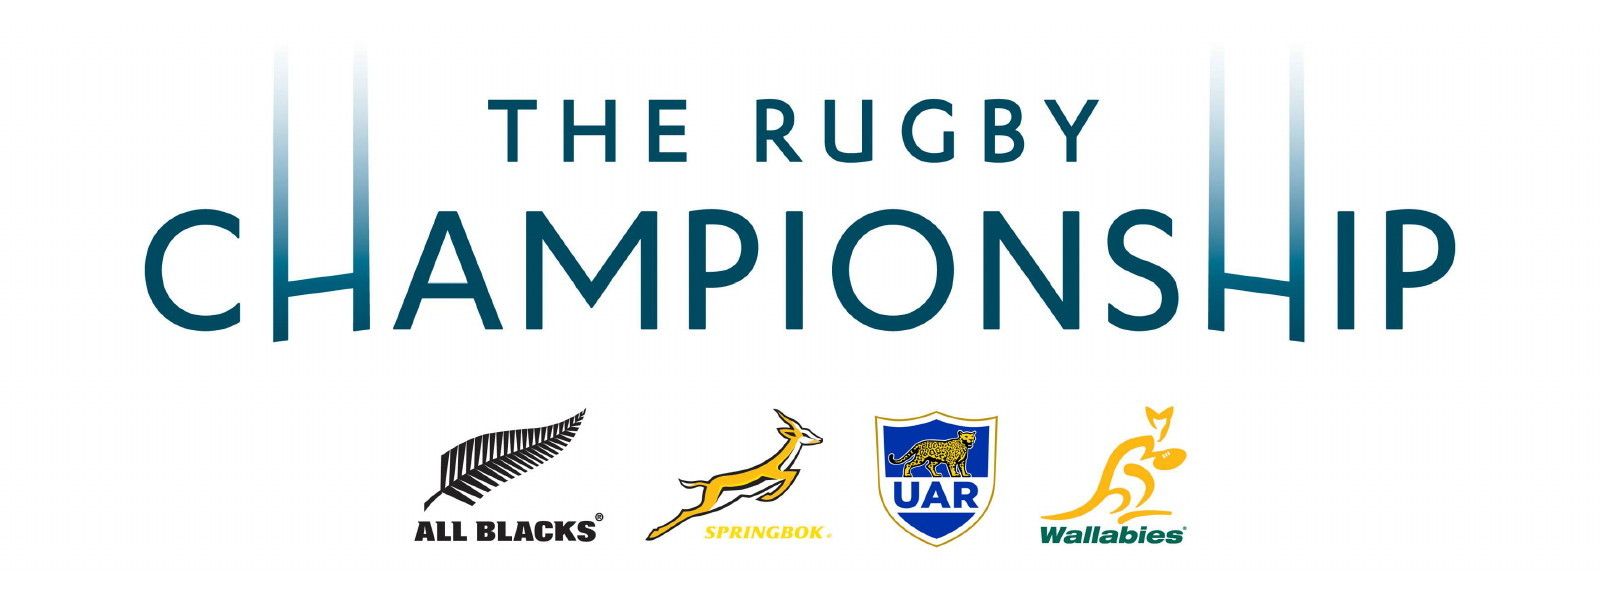 http://www.brassmonkeytaipei.com/site-content/8-home/1209-the-rugby-championship-2015